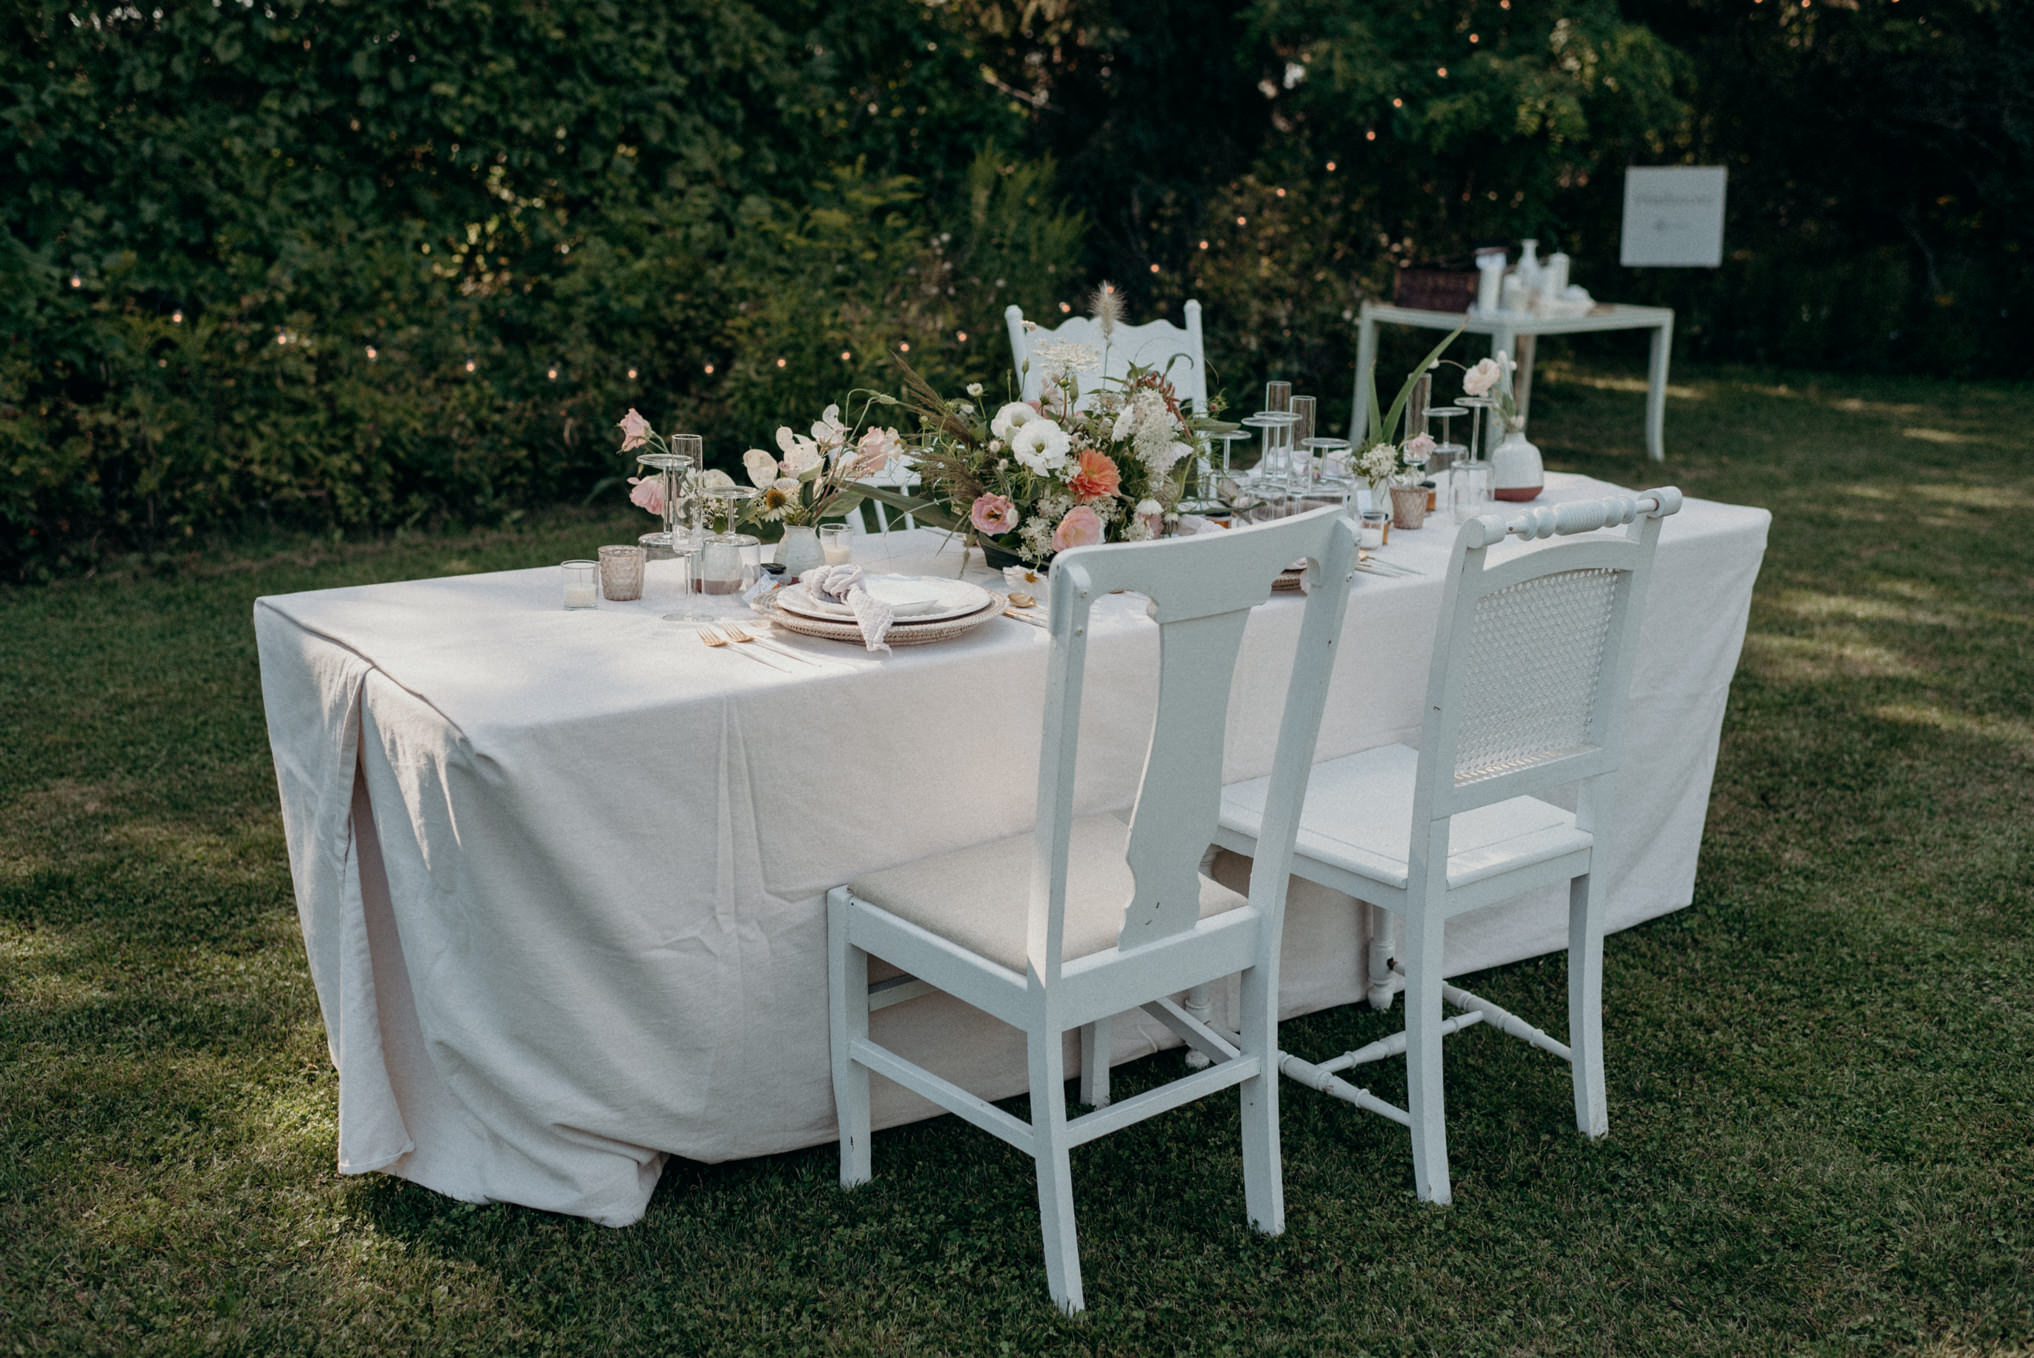 outdoor wedding reception on grass, table setting with string lights on trees